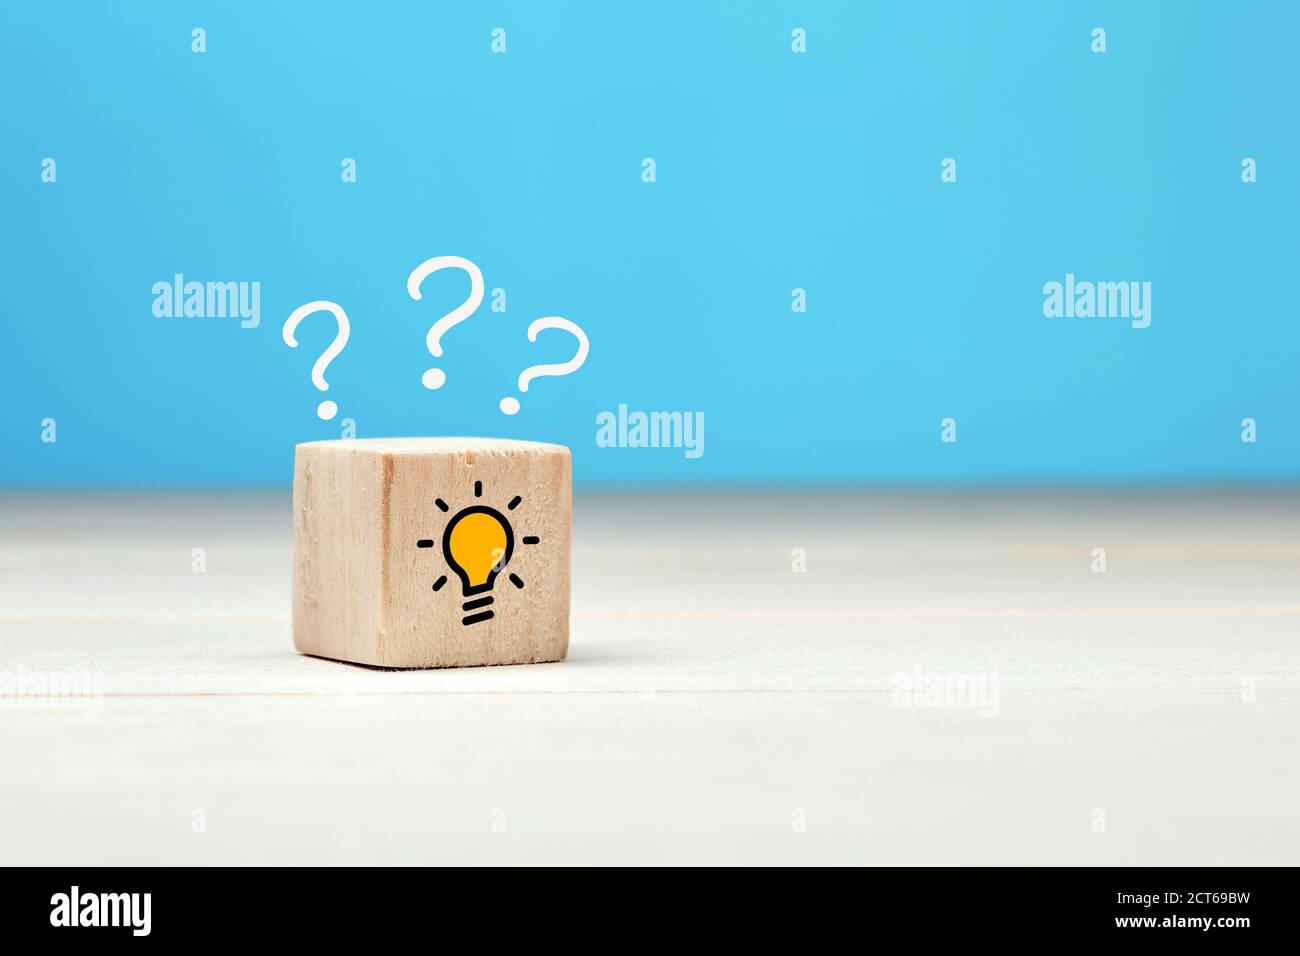 Creative idea, solution or problem solving concept. Question mark and light bulb icons on wooden cube against blue background. Stock Photo